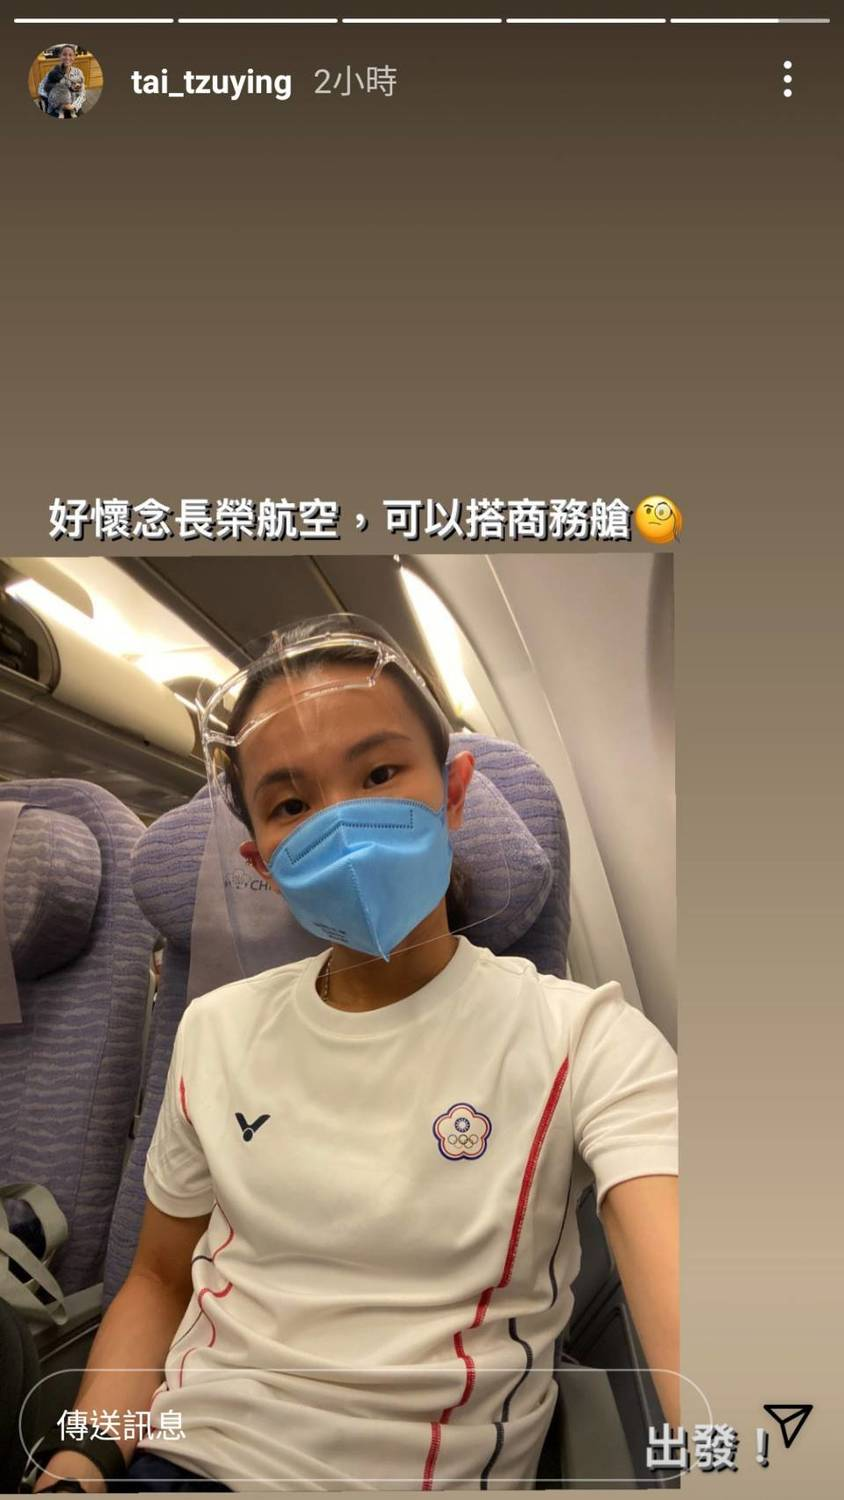 After the world badminton, Dai Ziying participated in the Tokyo Olympics and posted a message on IG